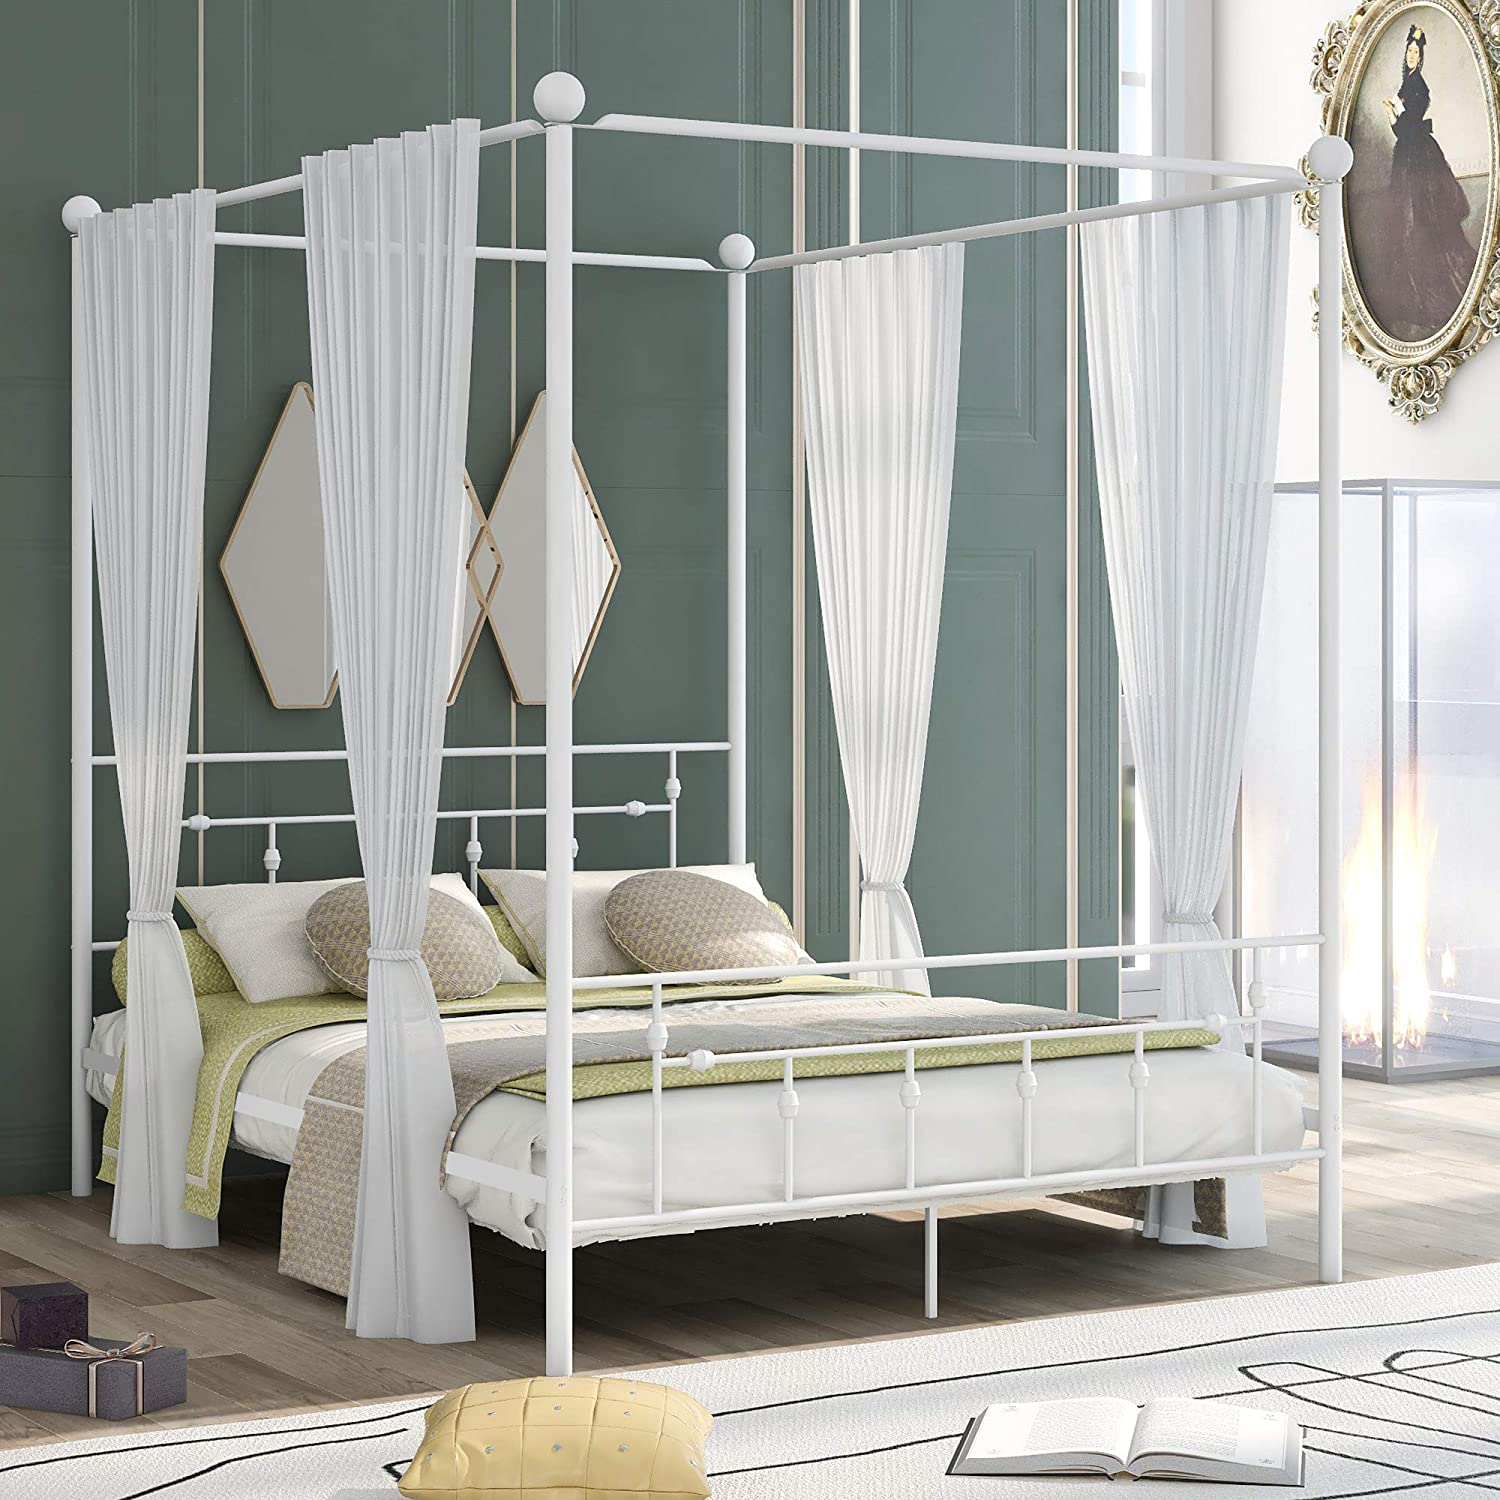 Kteam Queen Size Metal Canopy 安値 Bed Under-Be Headboard with 海外 Frame